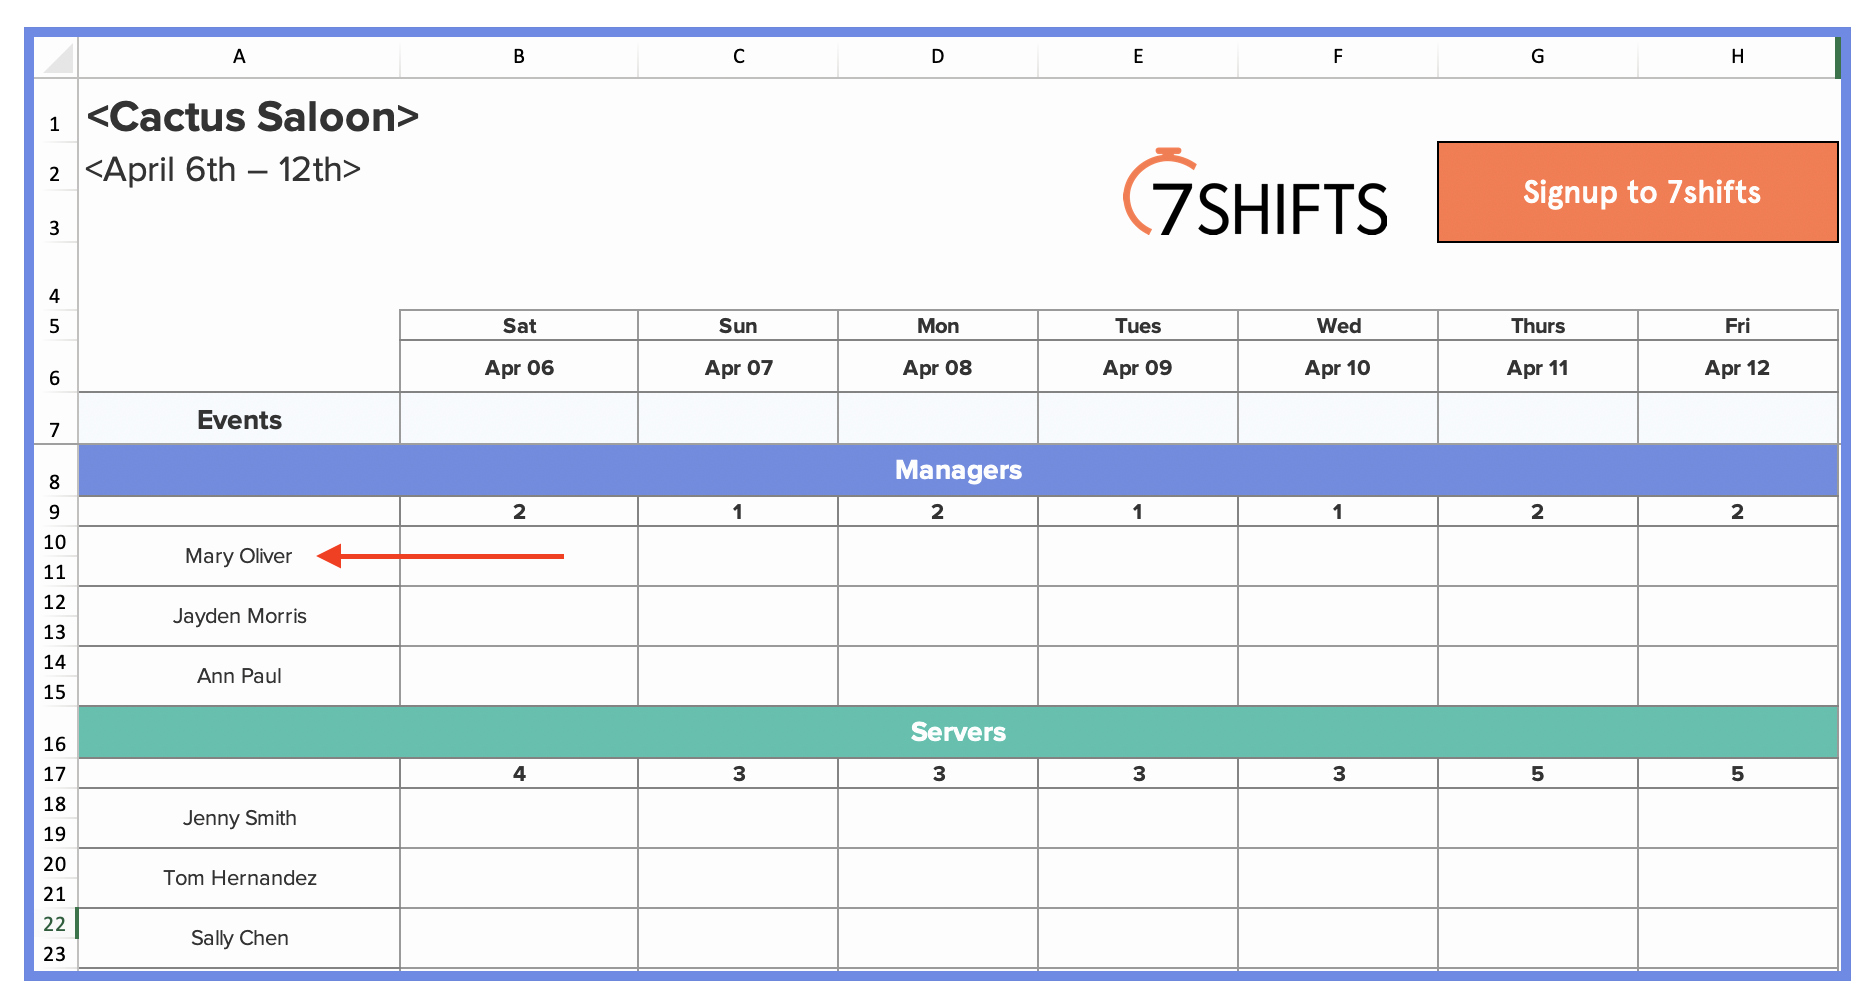 Restaurant Employee Schedule Template Lovely How to Make A Restaurant Work Schedule with Free Excel